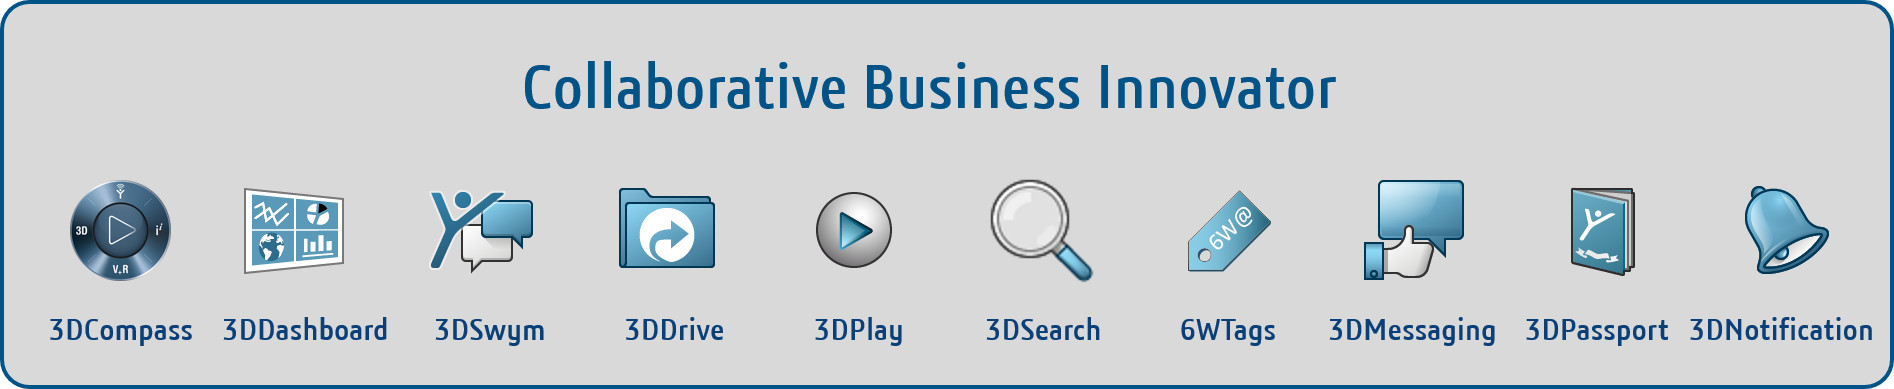 Plataforma 3DEXPERIENCE | Collaborative Business Innovator